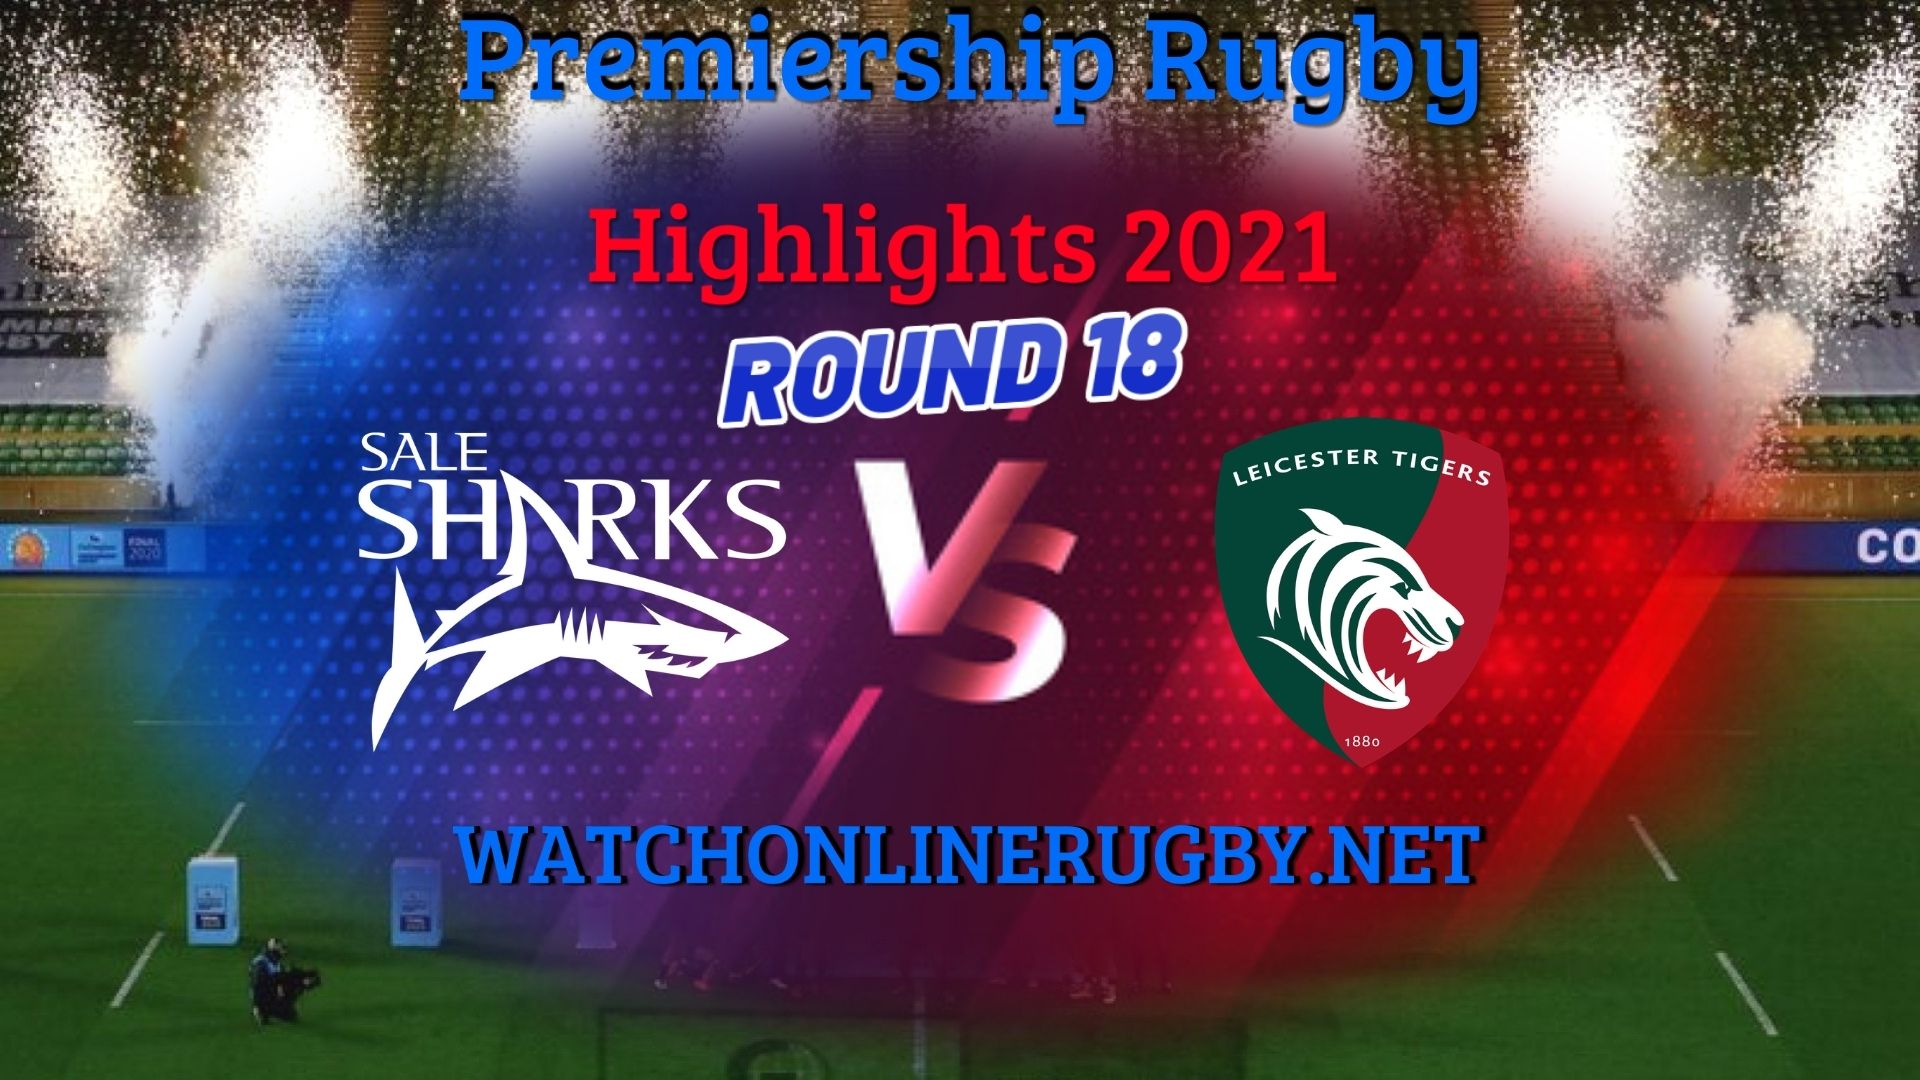 Sale Sharks Vs Leicester Tigers Premiership Rugby 2021 RD 18